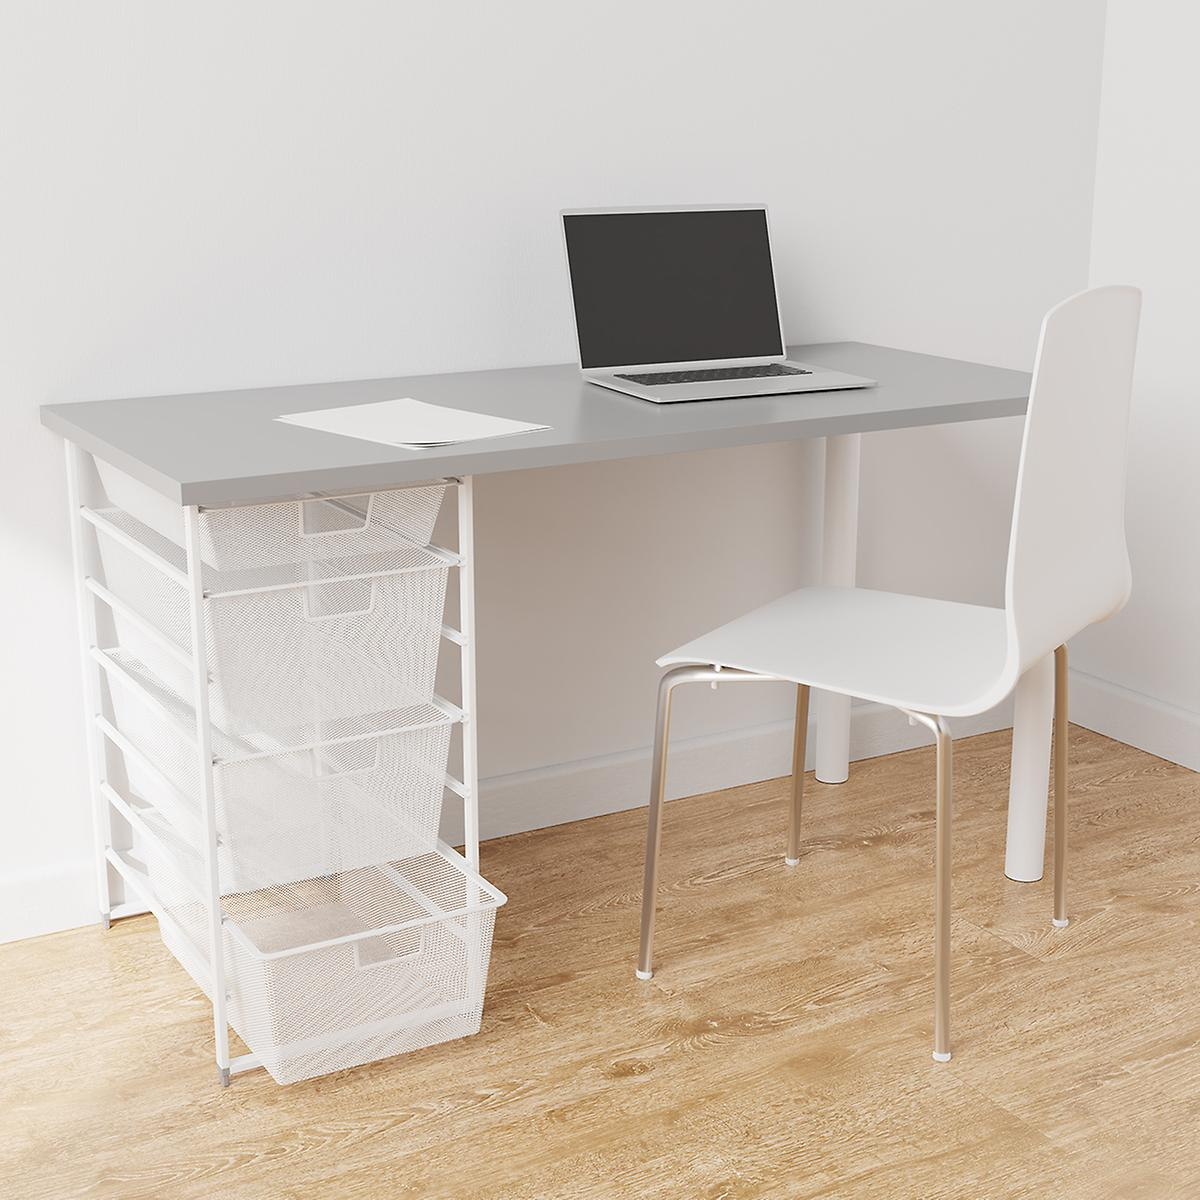 Elfa White & Grey Desk with Drawers